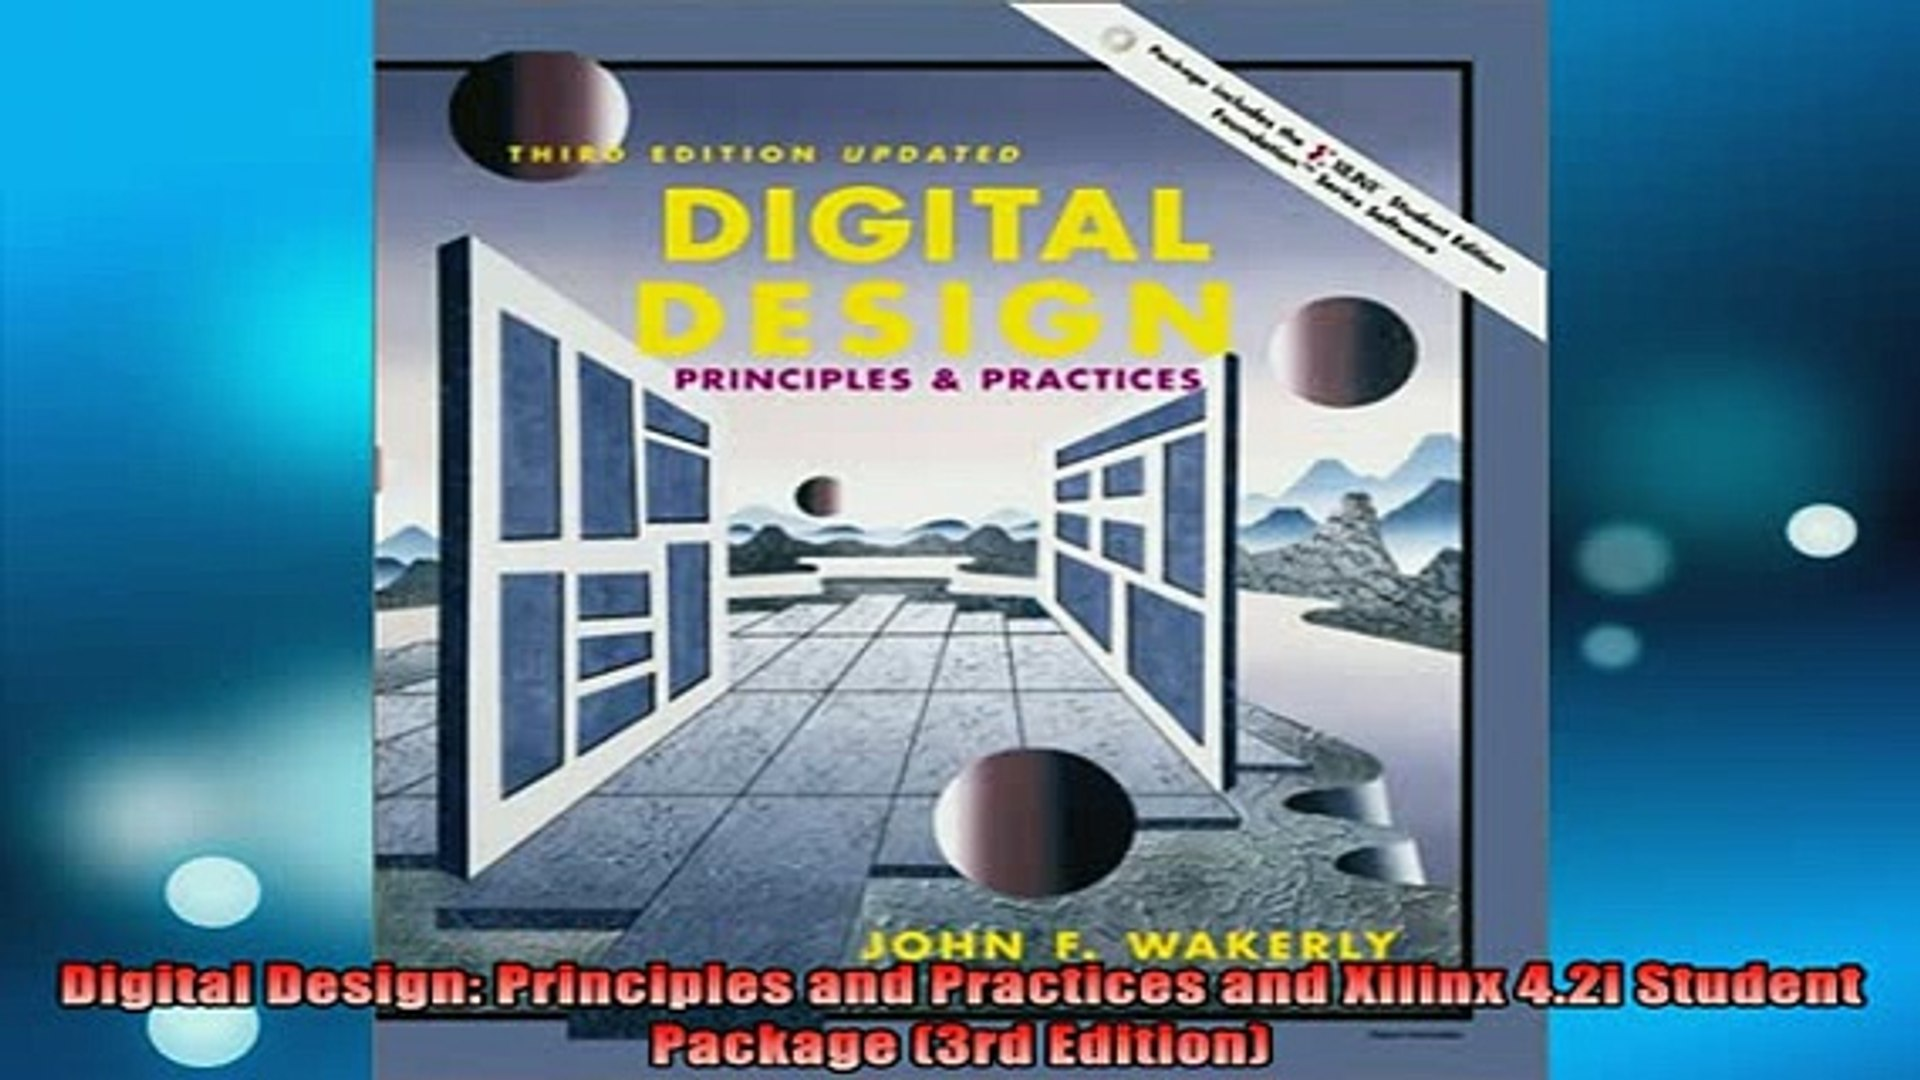 Read Book Digital Design Principles And Practices And Xilinx 42i Student Package 3rd Edition Full Ebook Video Dailymotion